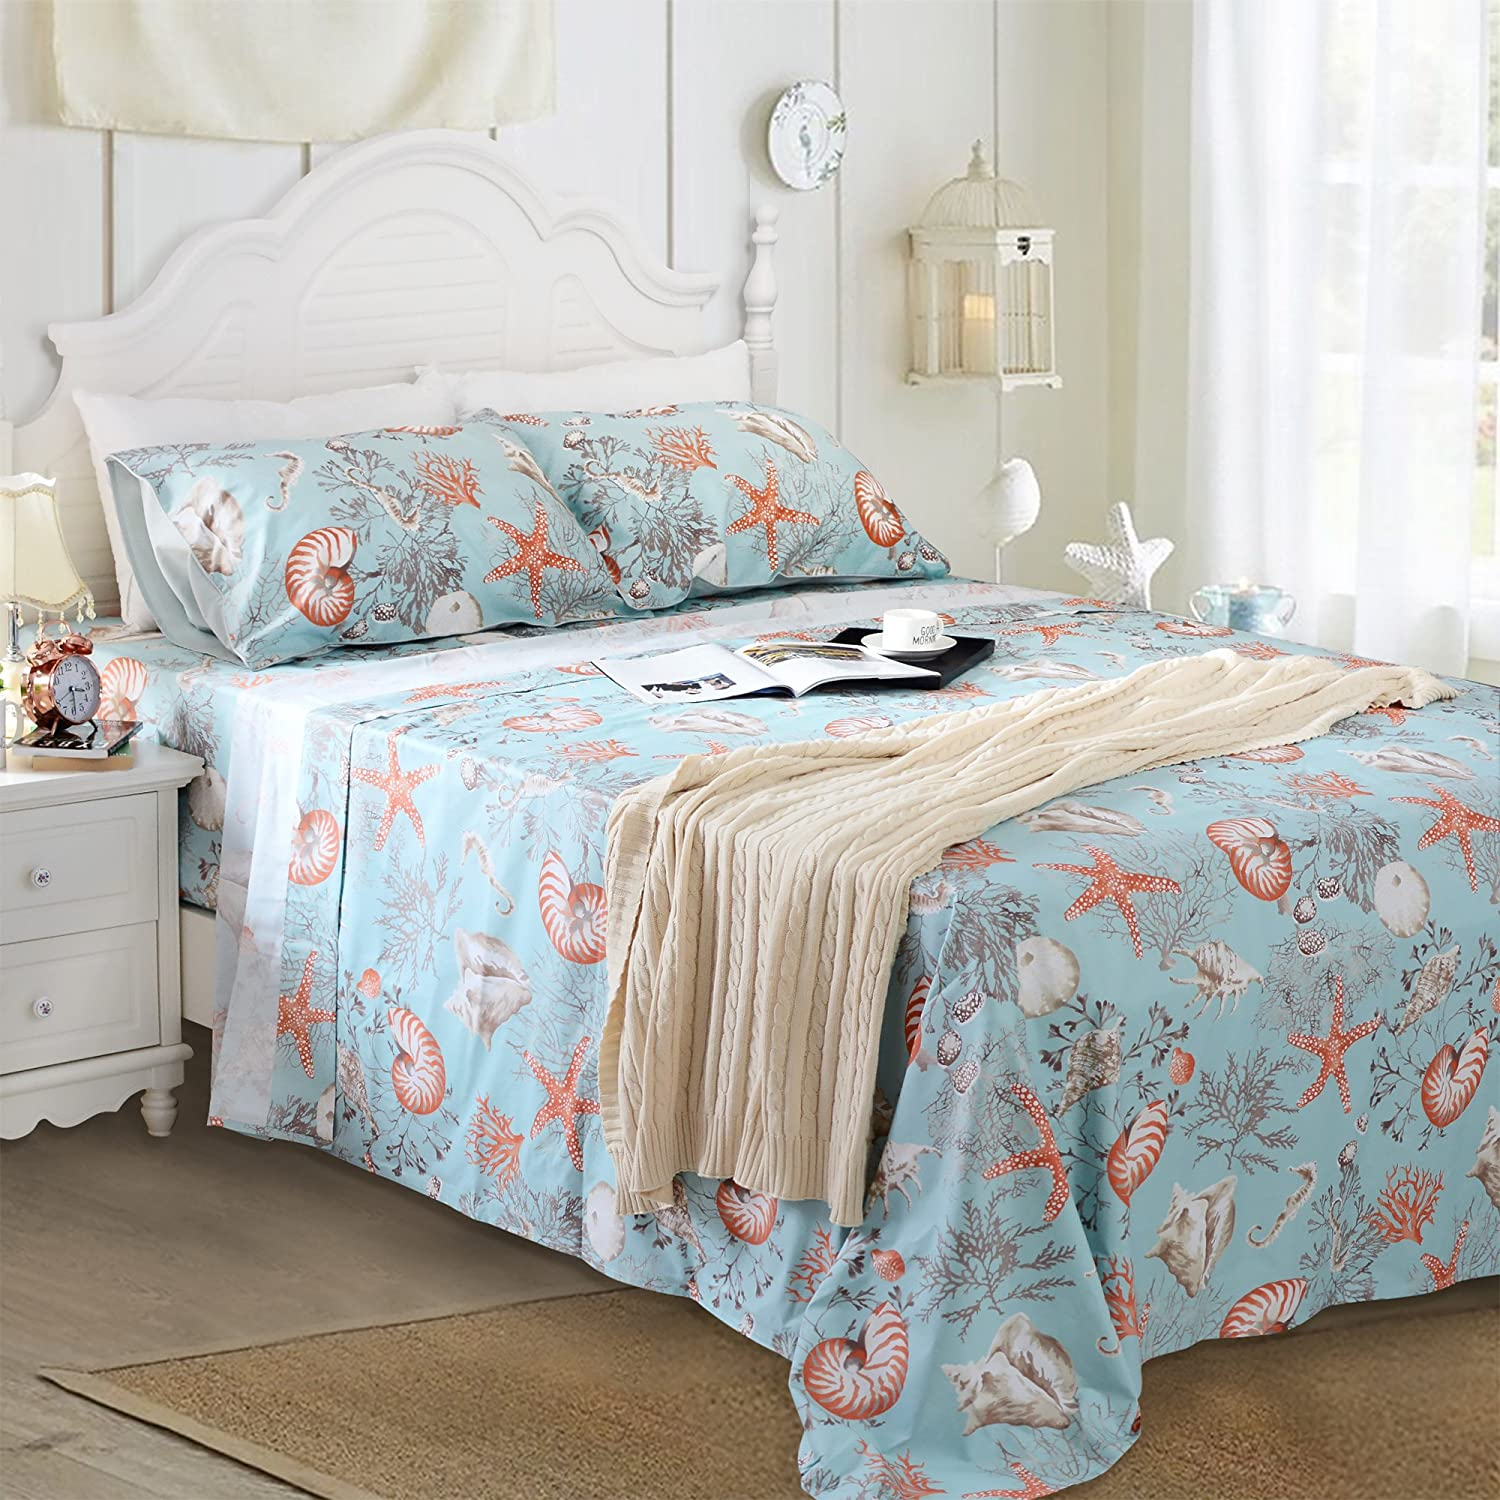 Brandream Queen Size Sheets Set Deep Pockets 18 Inch Designer Beach Themed Bedding Sets Seashells Coral Printed Sheets 100% Egyptian Cotton